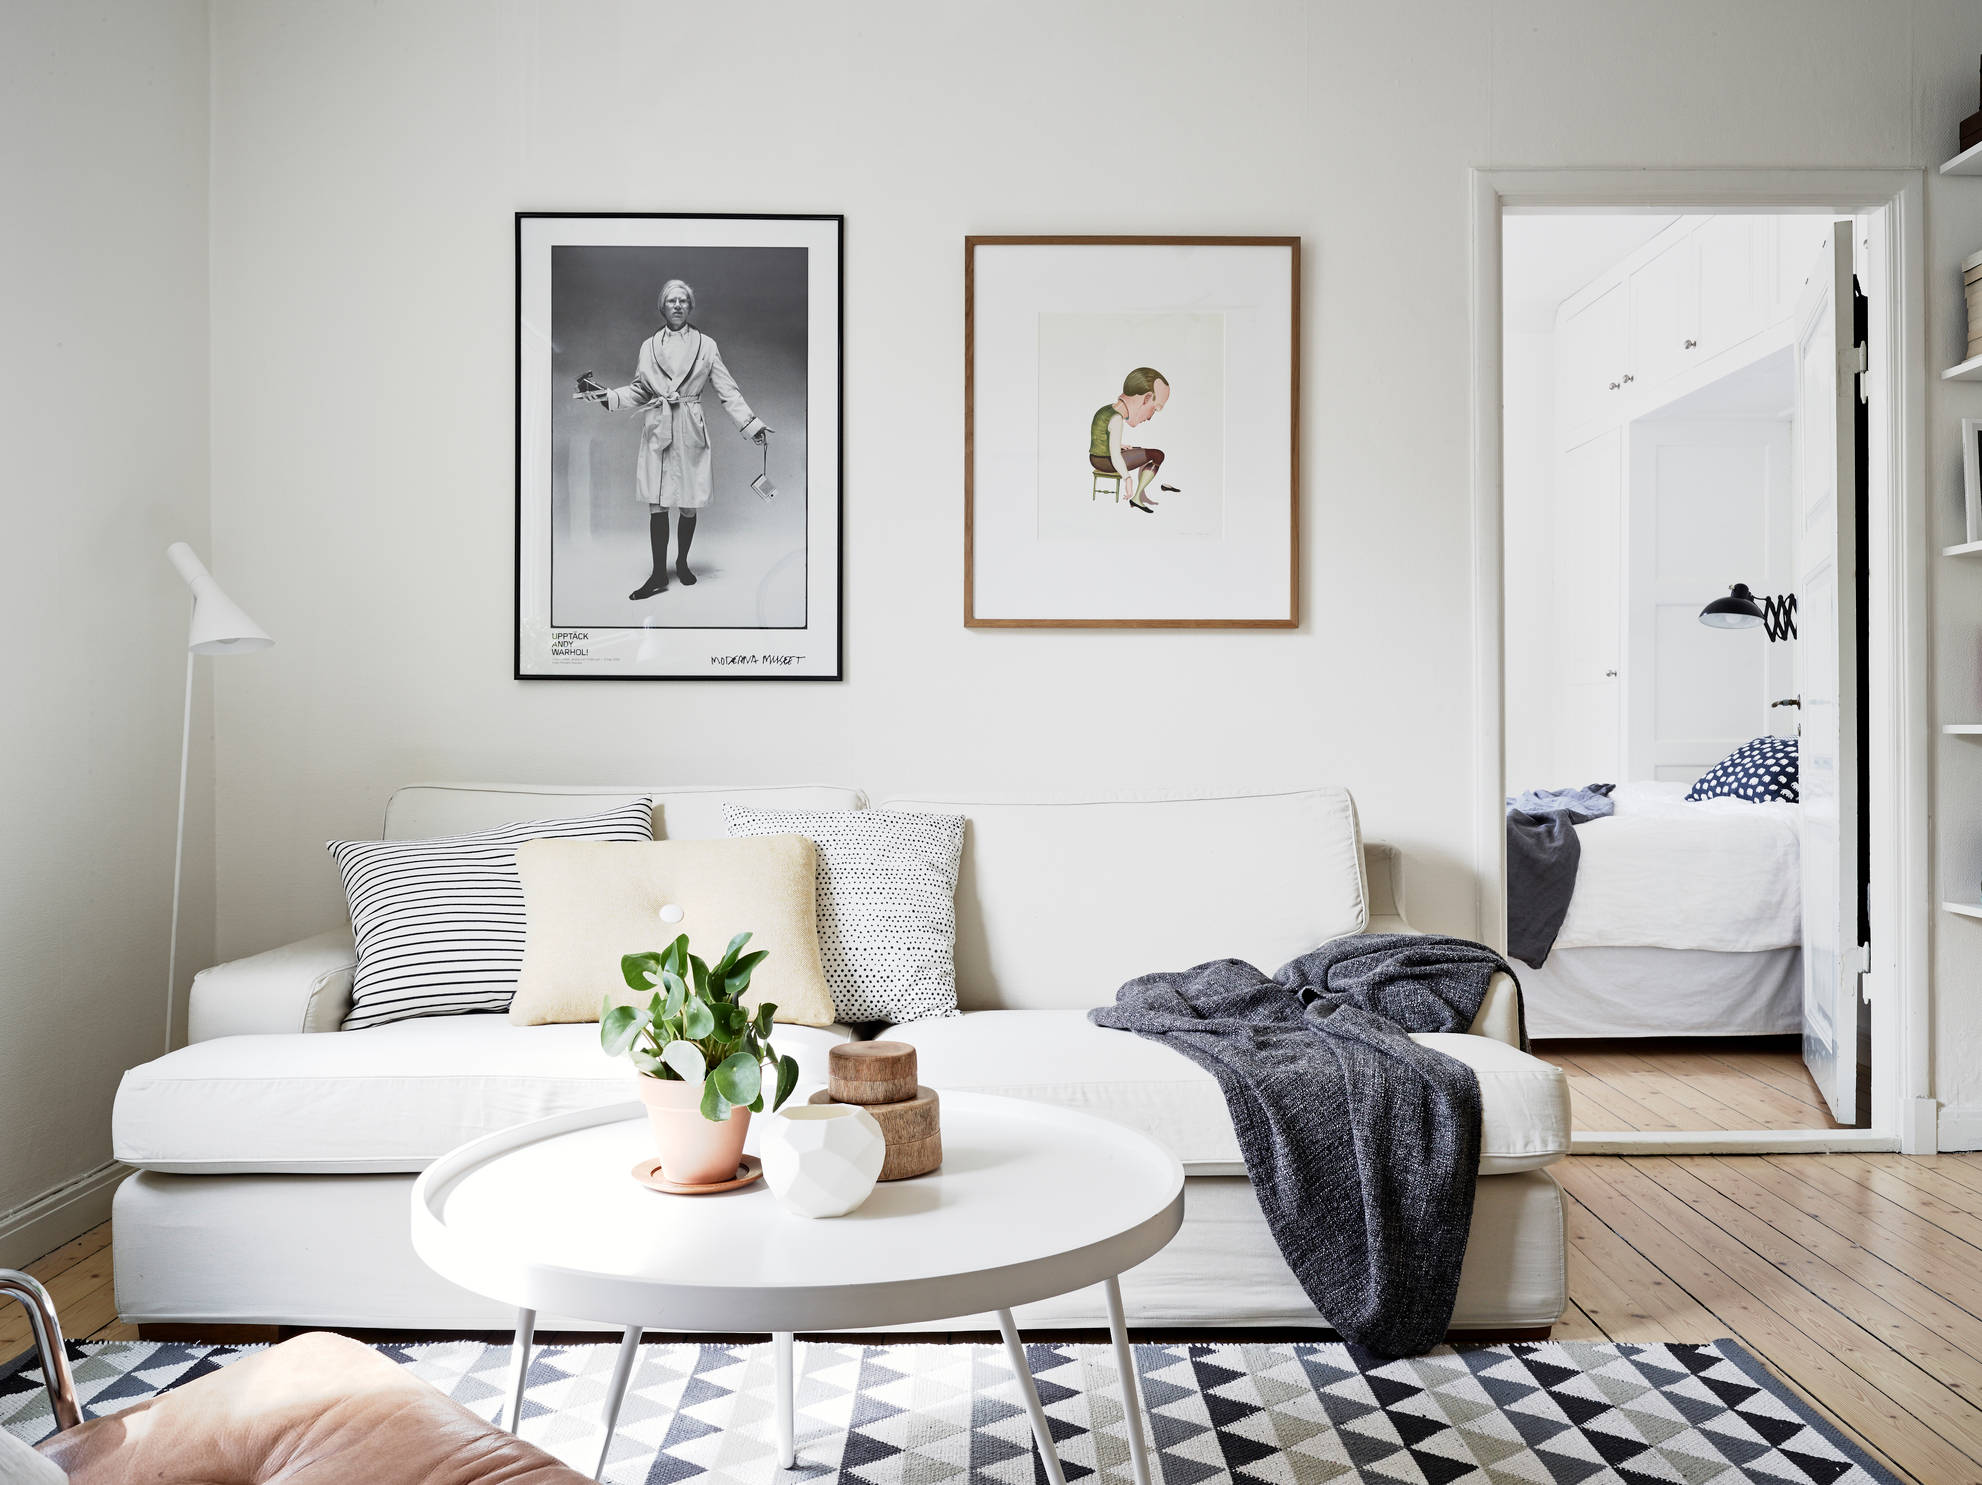 Bike in the living room coco lapine designcoco lapine design - Deco scandinave ikea ...